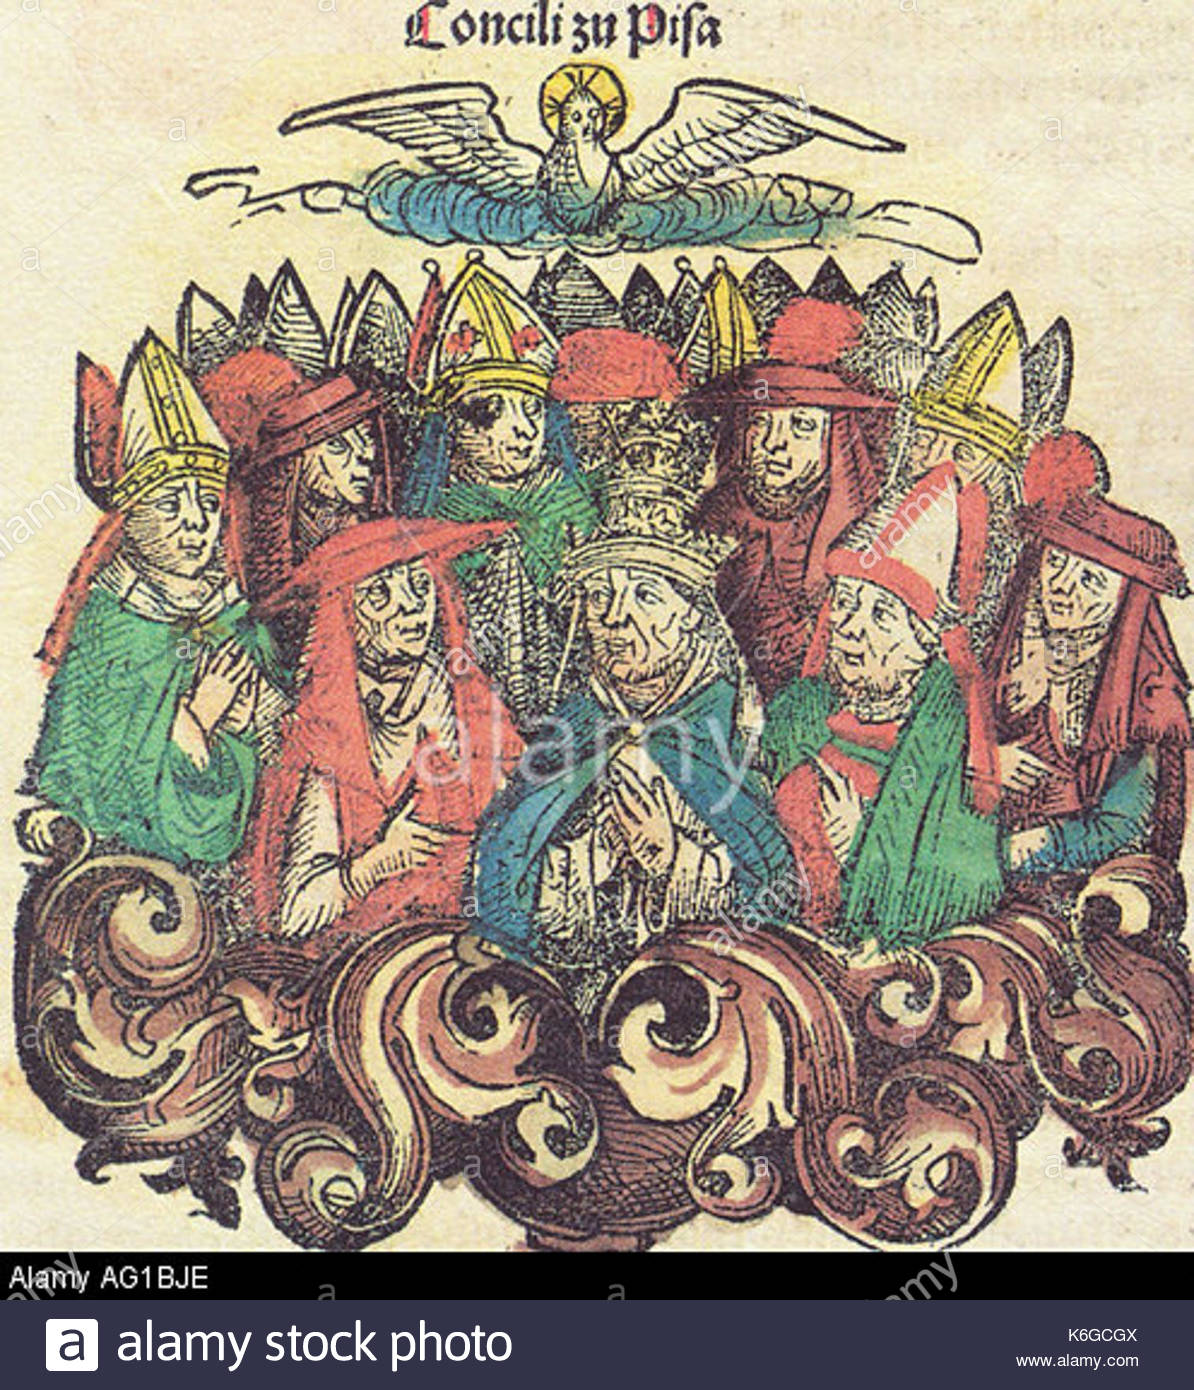 Council of pisa 1409 allegory woodcut AG1BJE - Stock Image